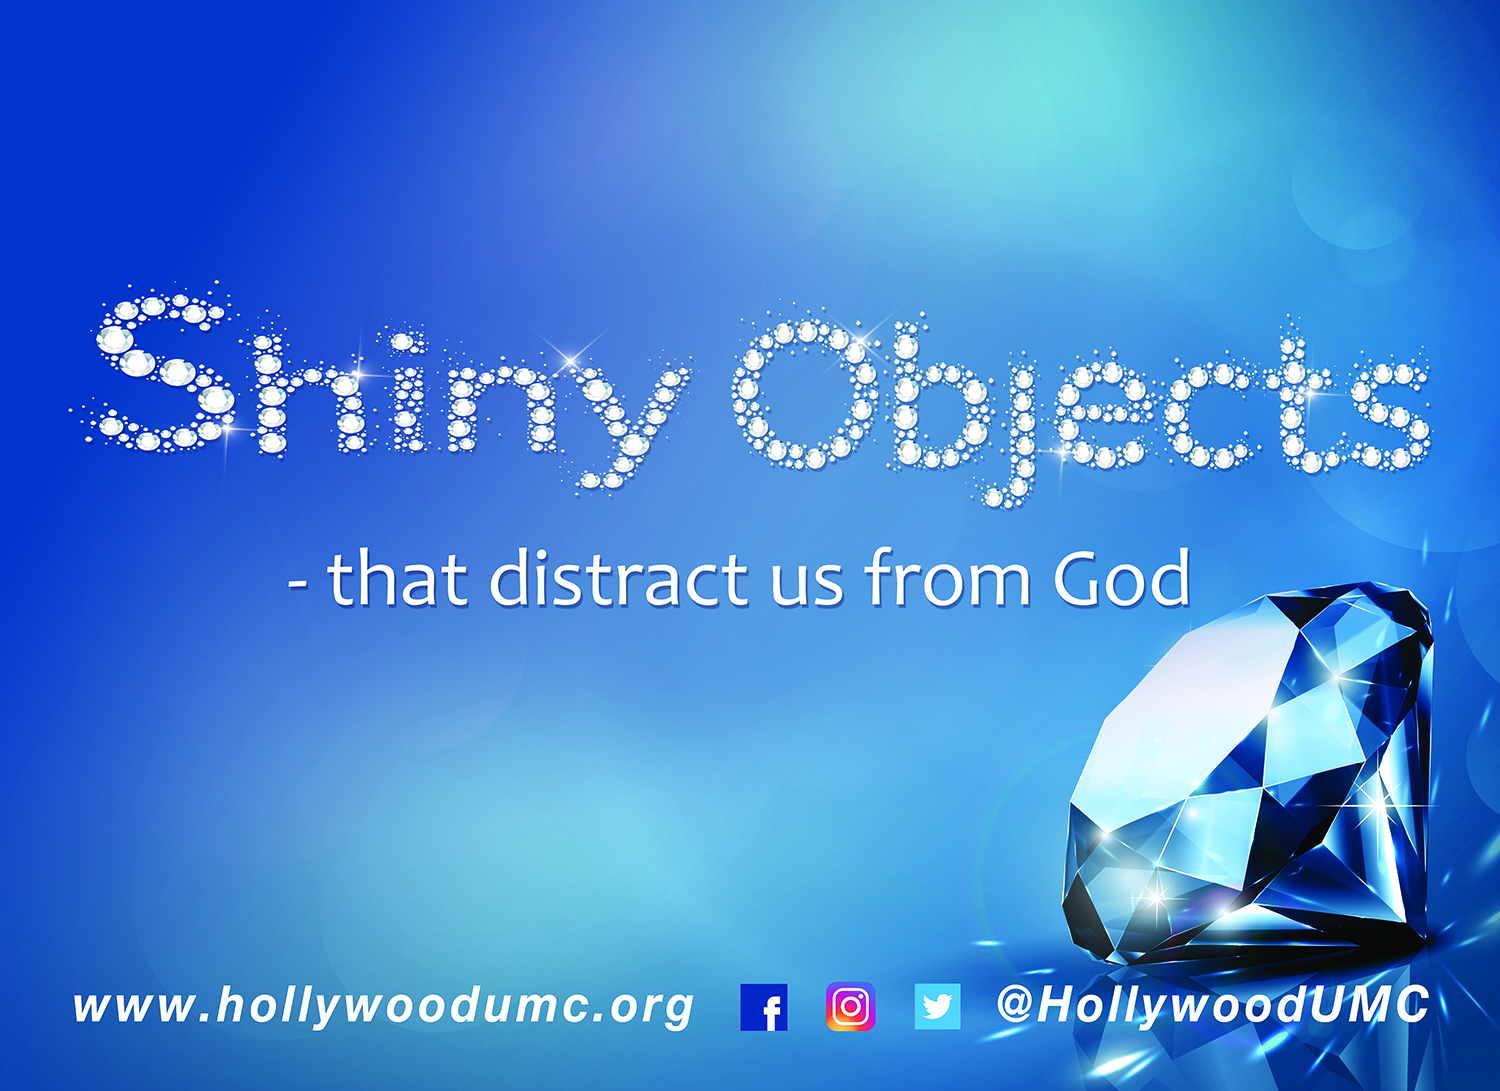 Shiny Objects Hwood San Banner (132x96)